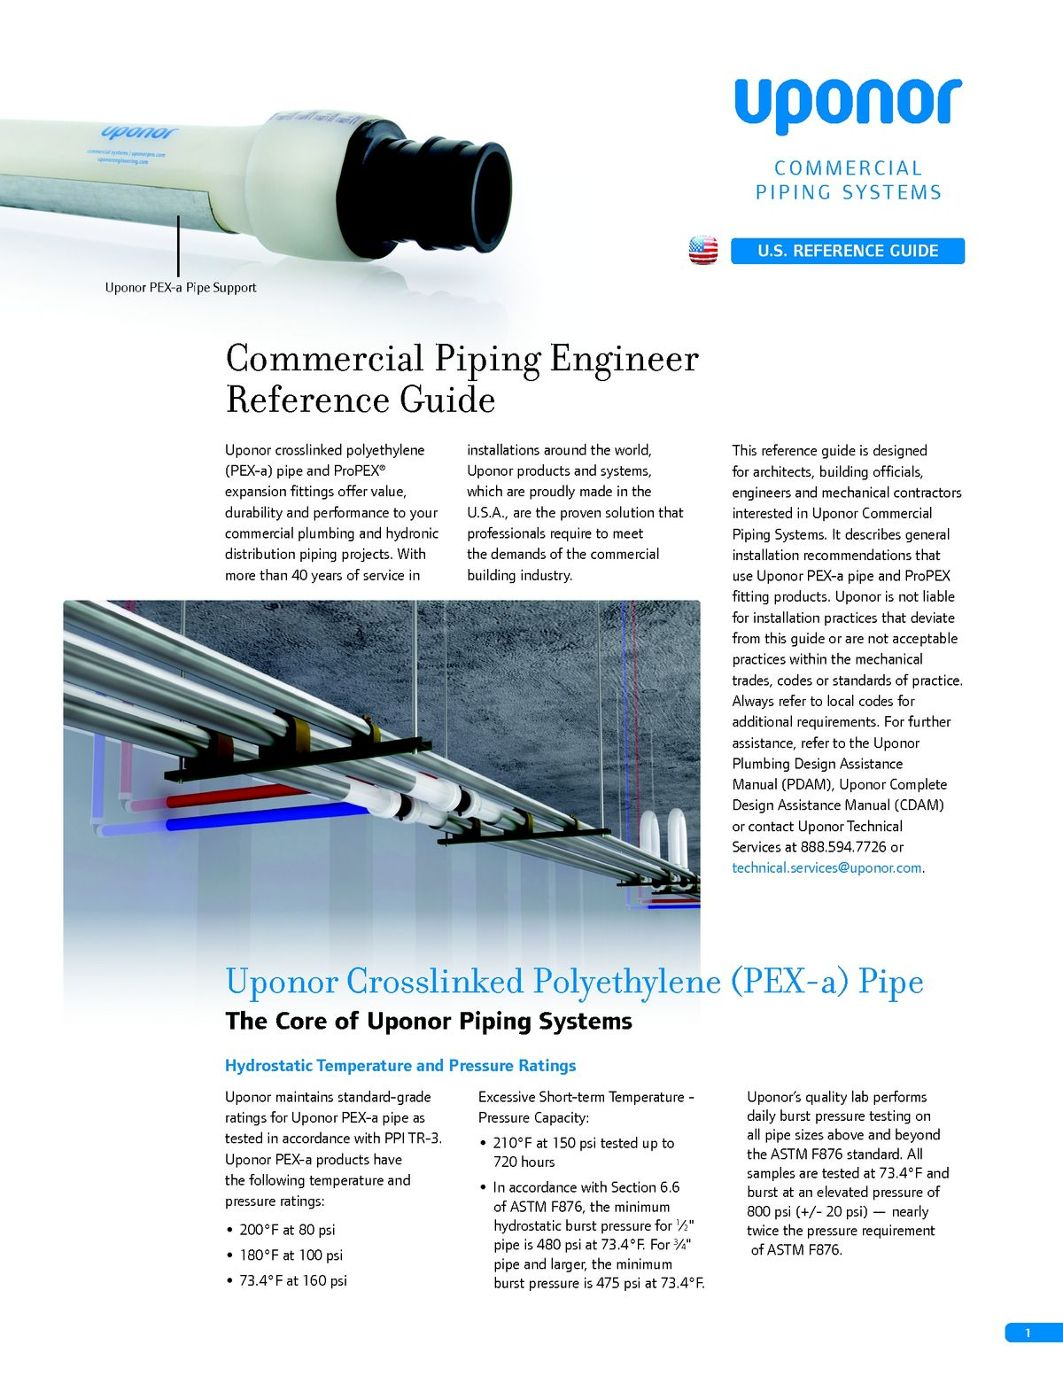 Uponor Commercial Piping Engineer Reference Guide